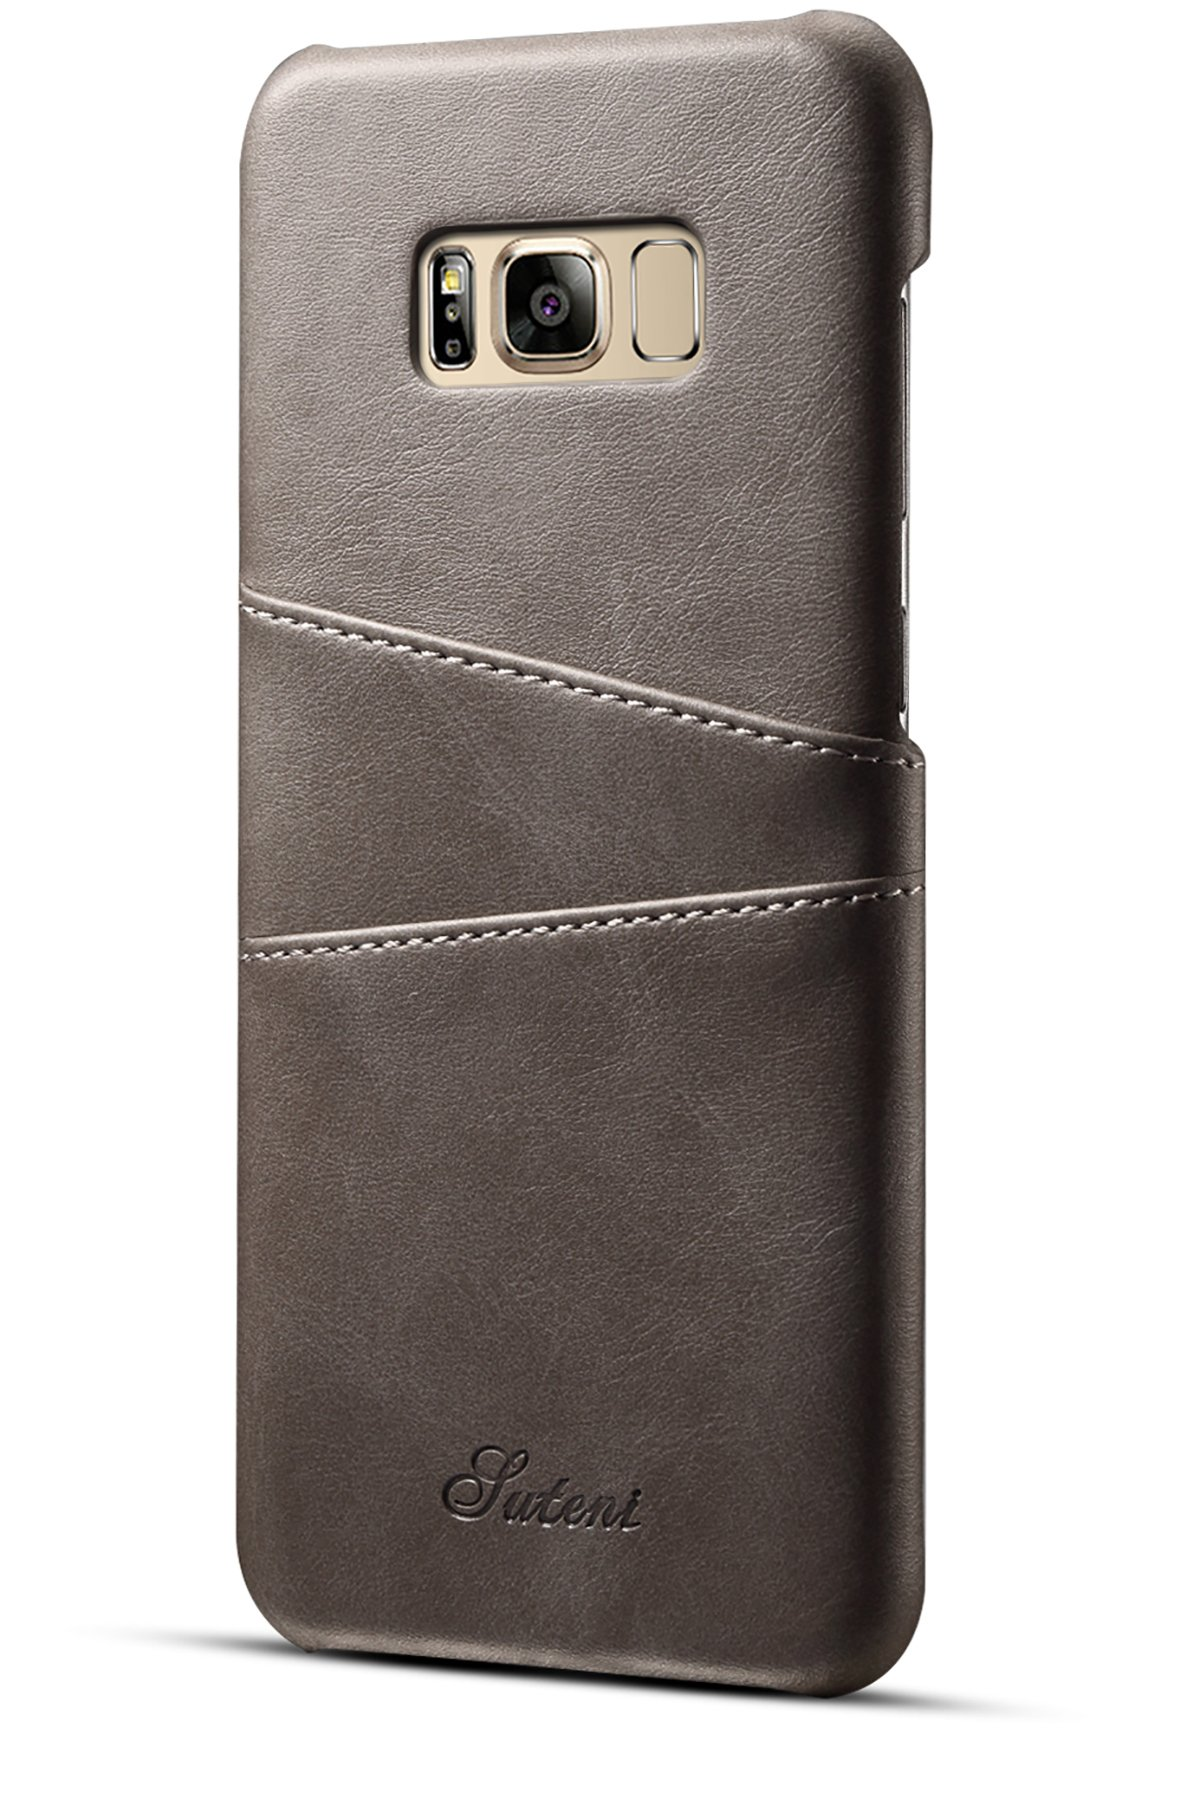 XRPow Samsung Galaxy S8 Plus Wallet Phone Case, Slim Leather Wallet Case Back Cover With Credit Card Holder